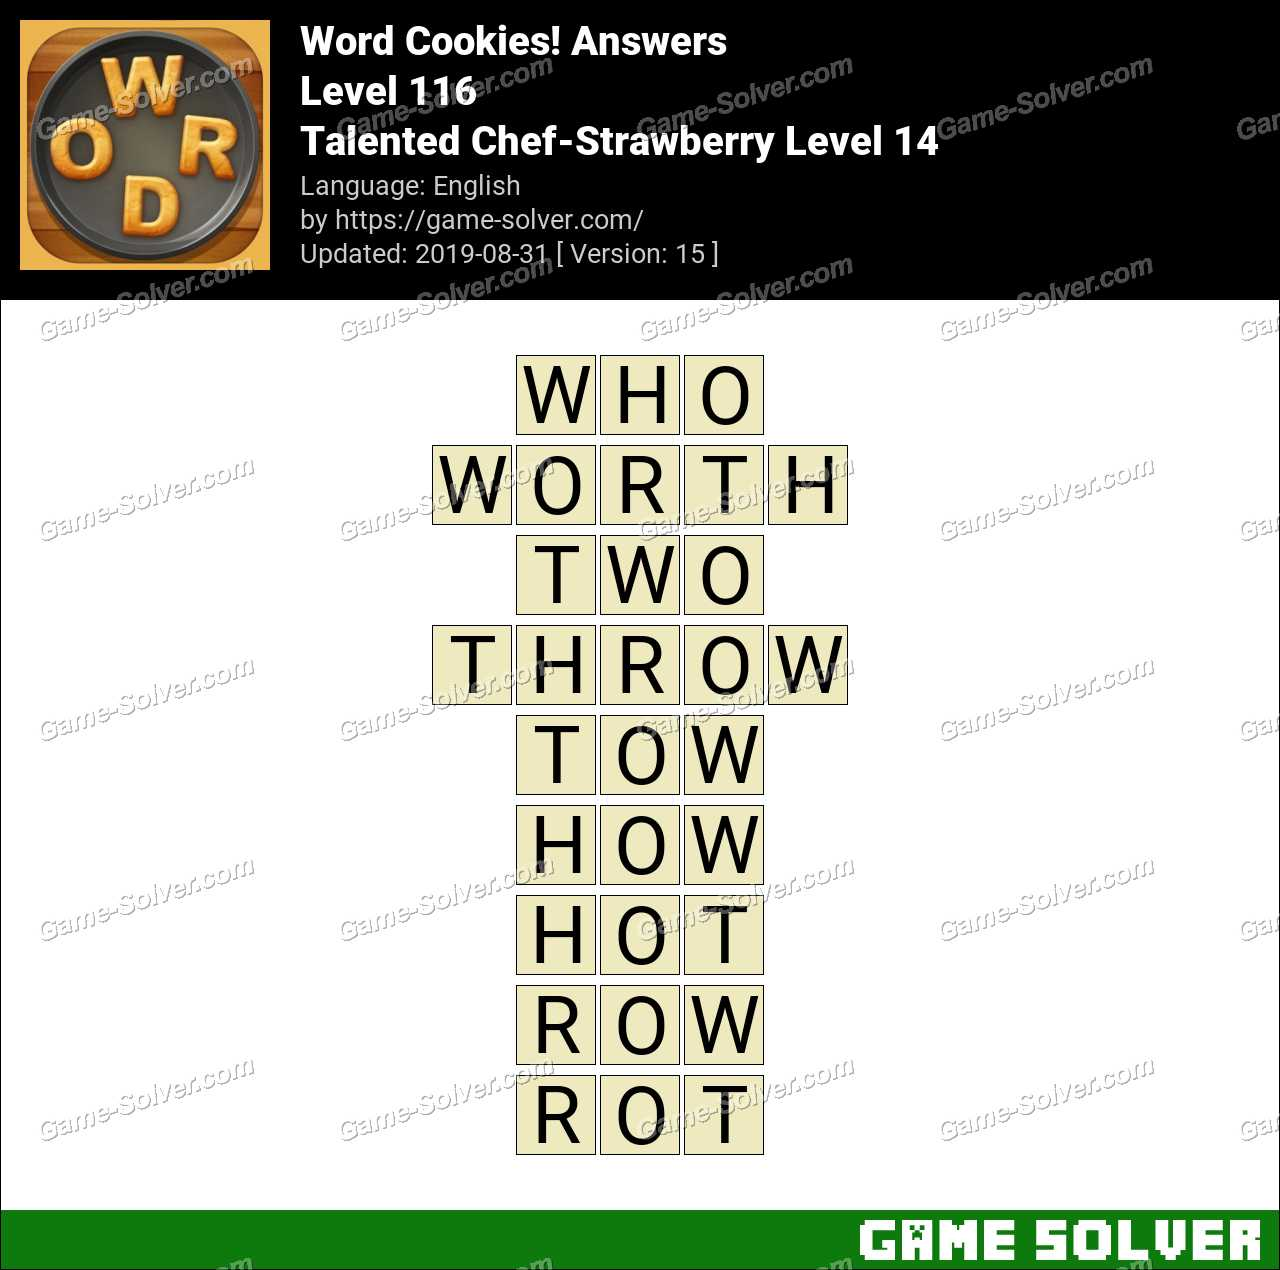 Word Cookies Talented Chef-Strawberry Level 14 Answers